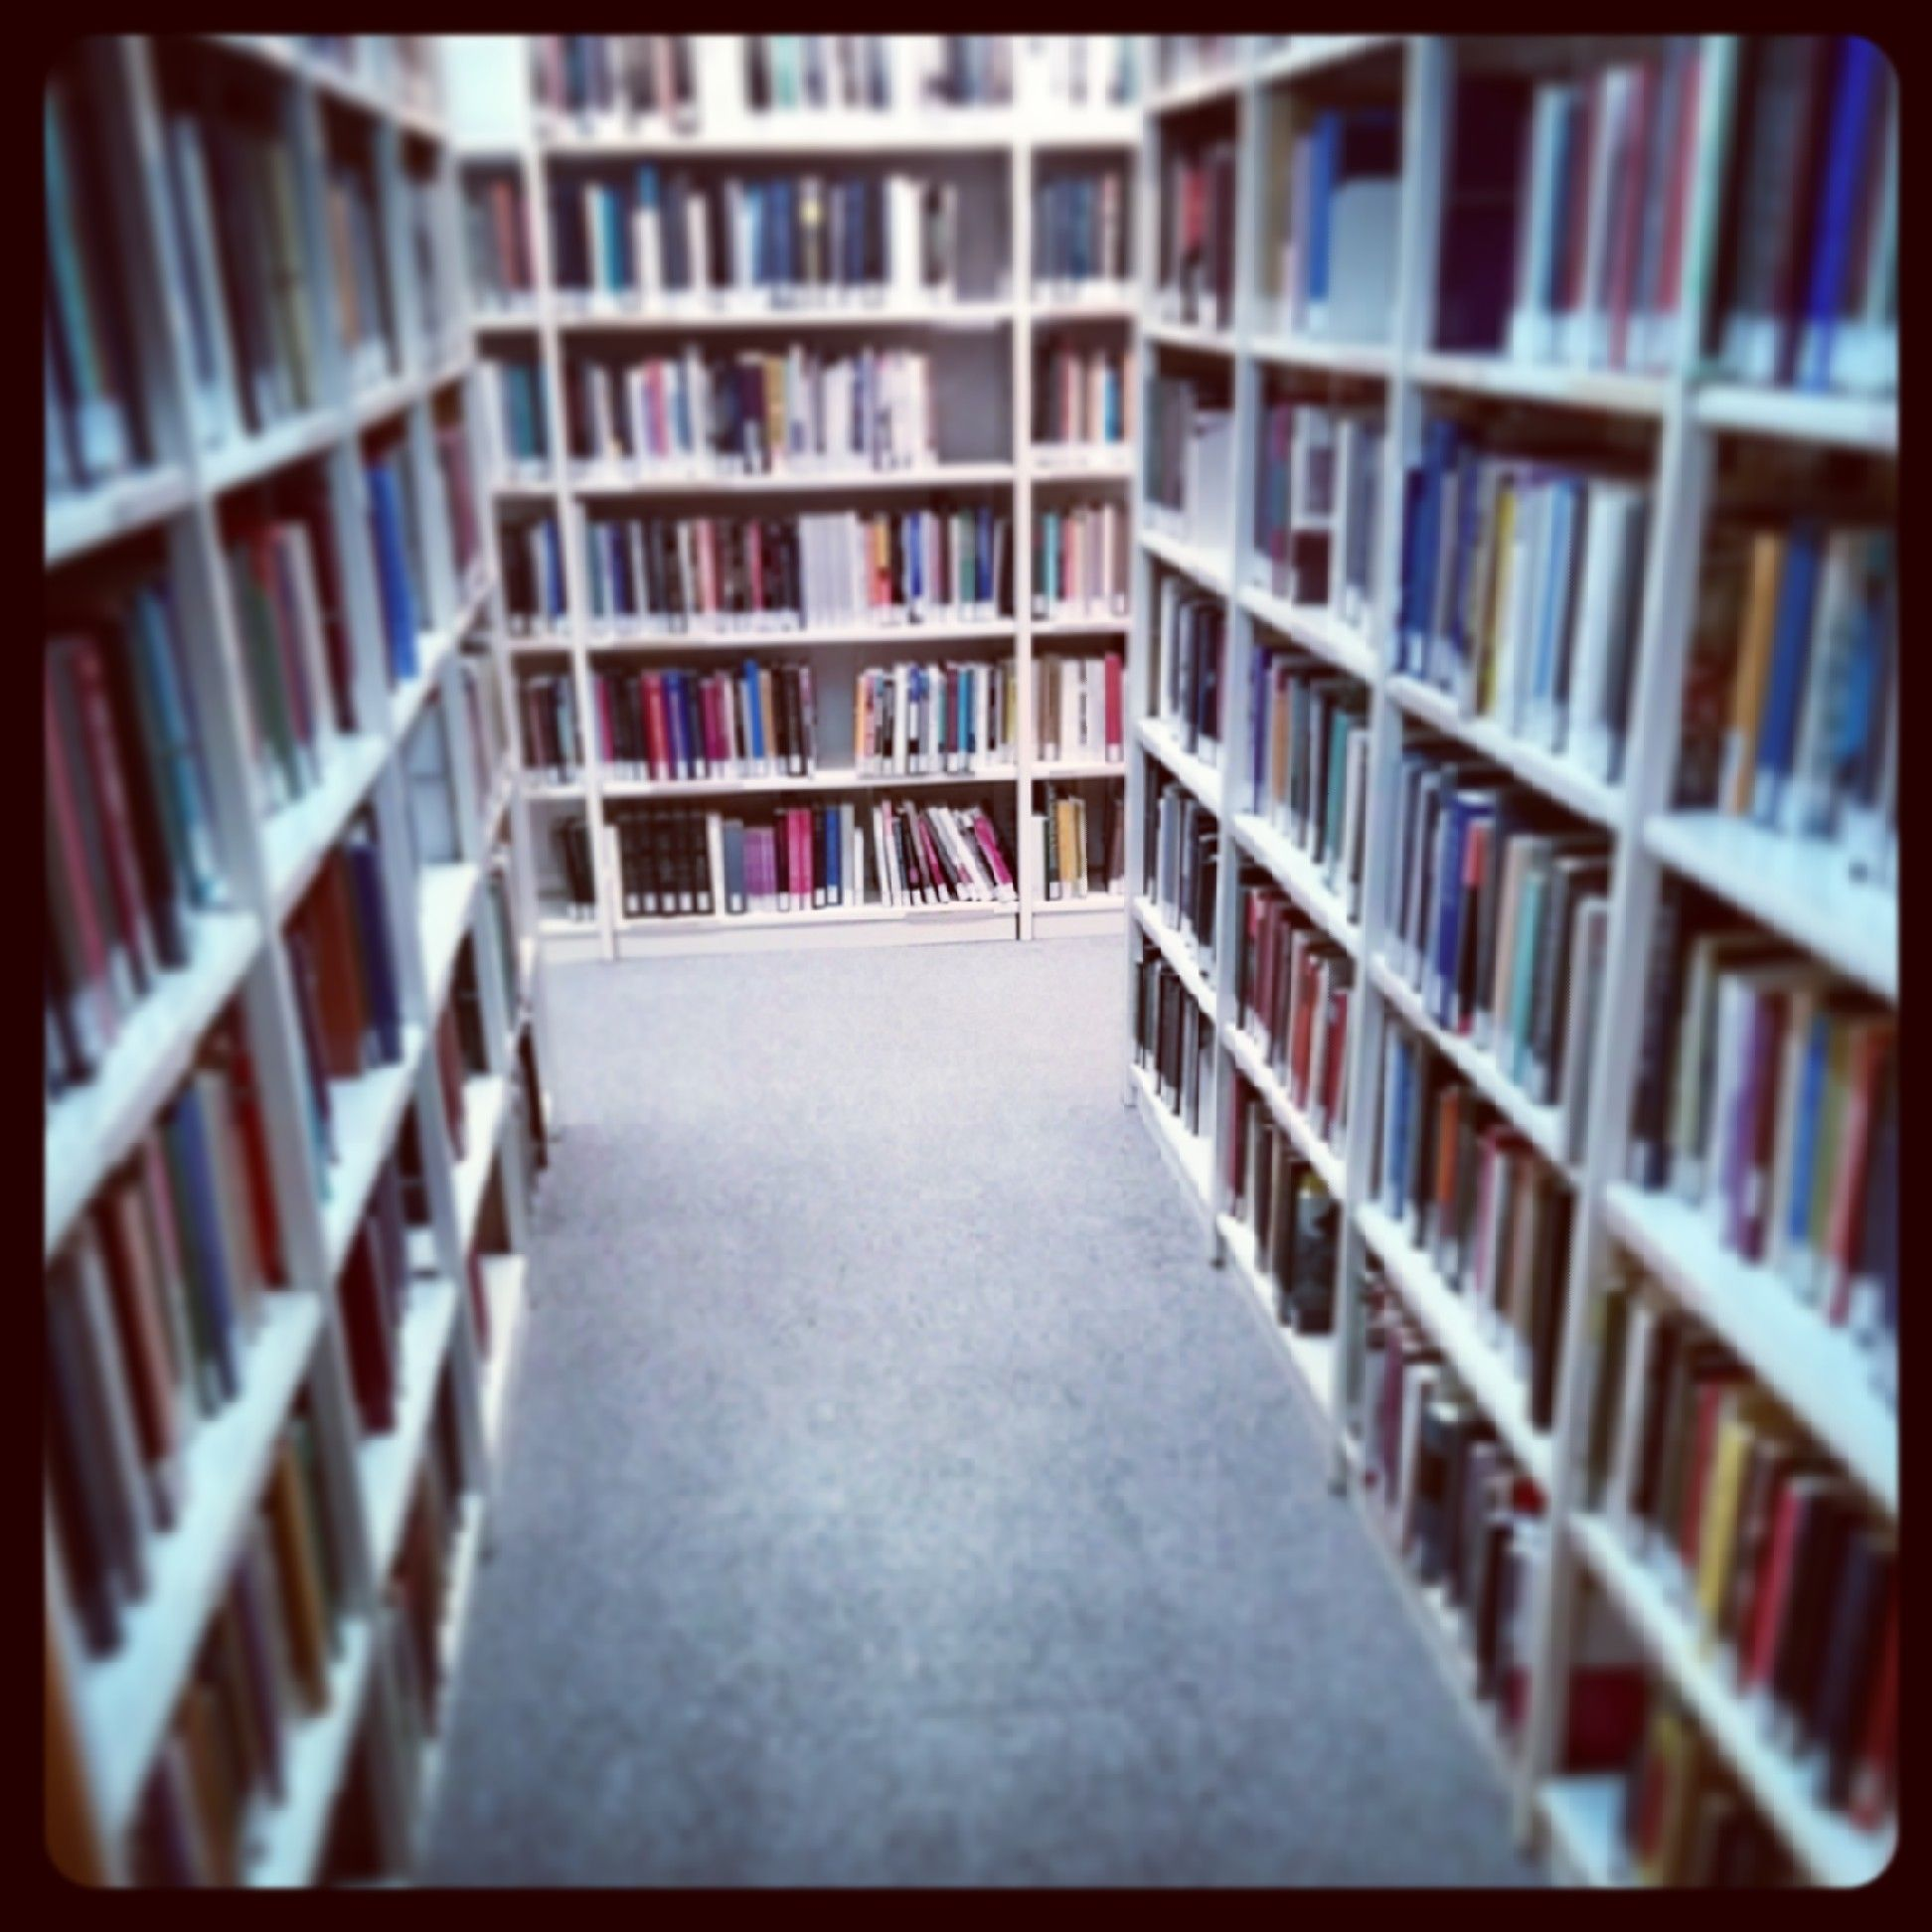 OurLibrary